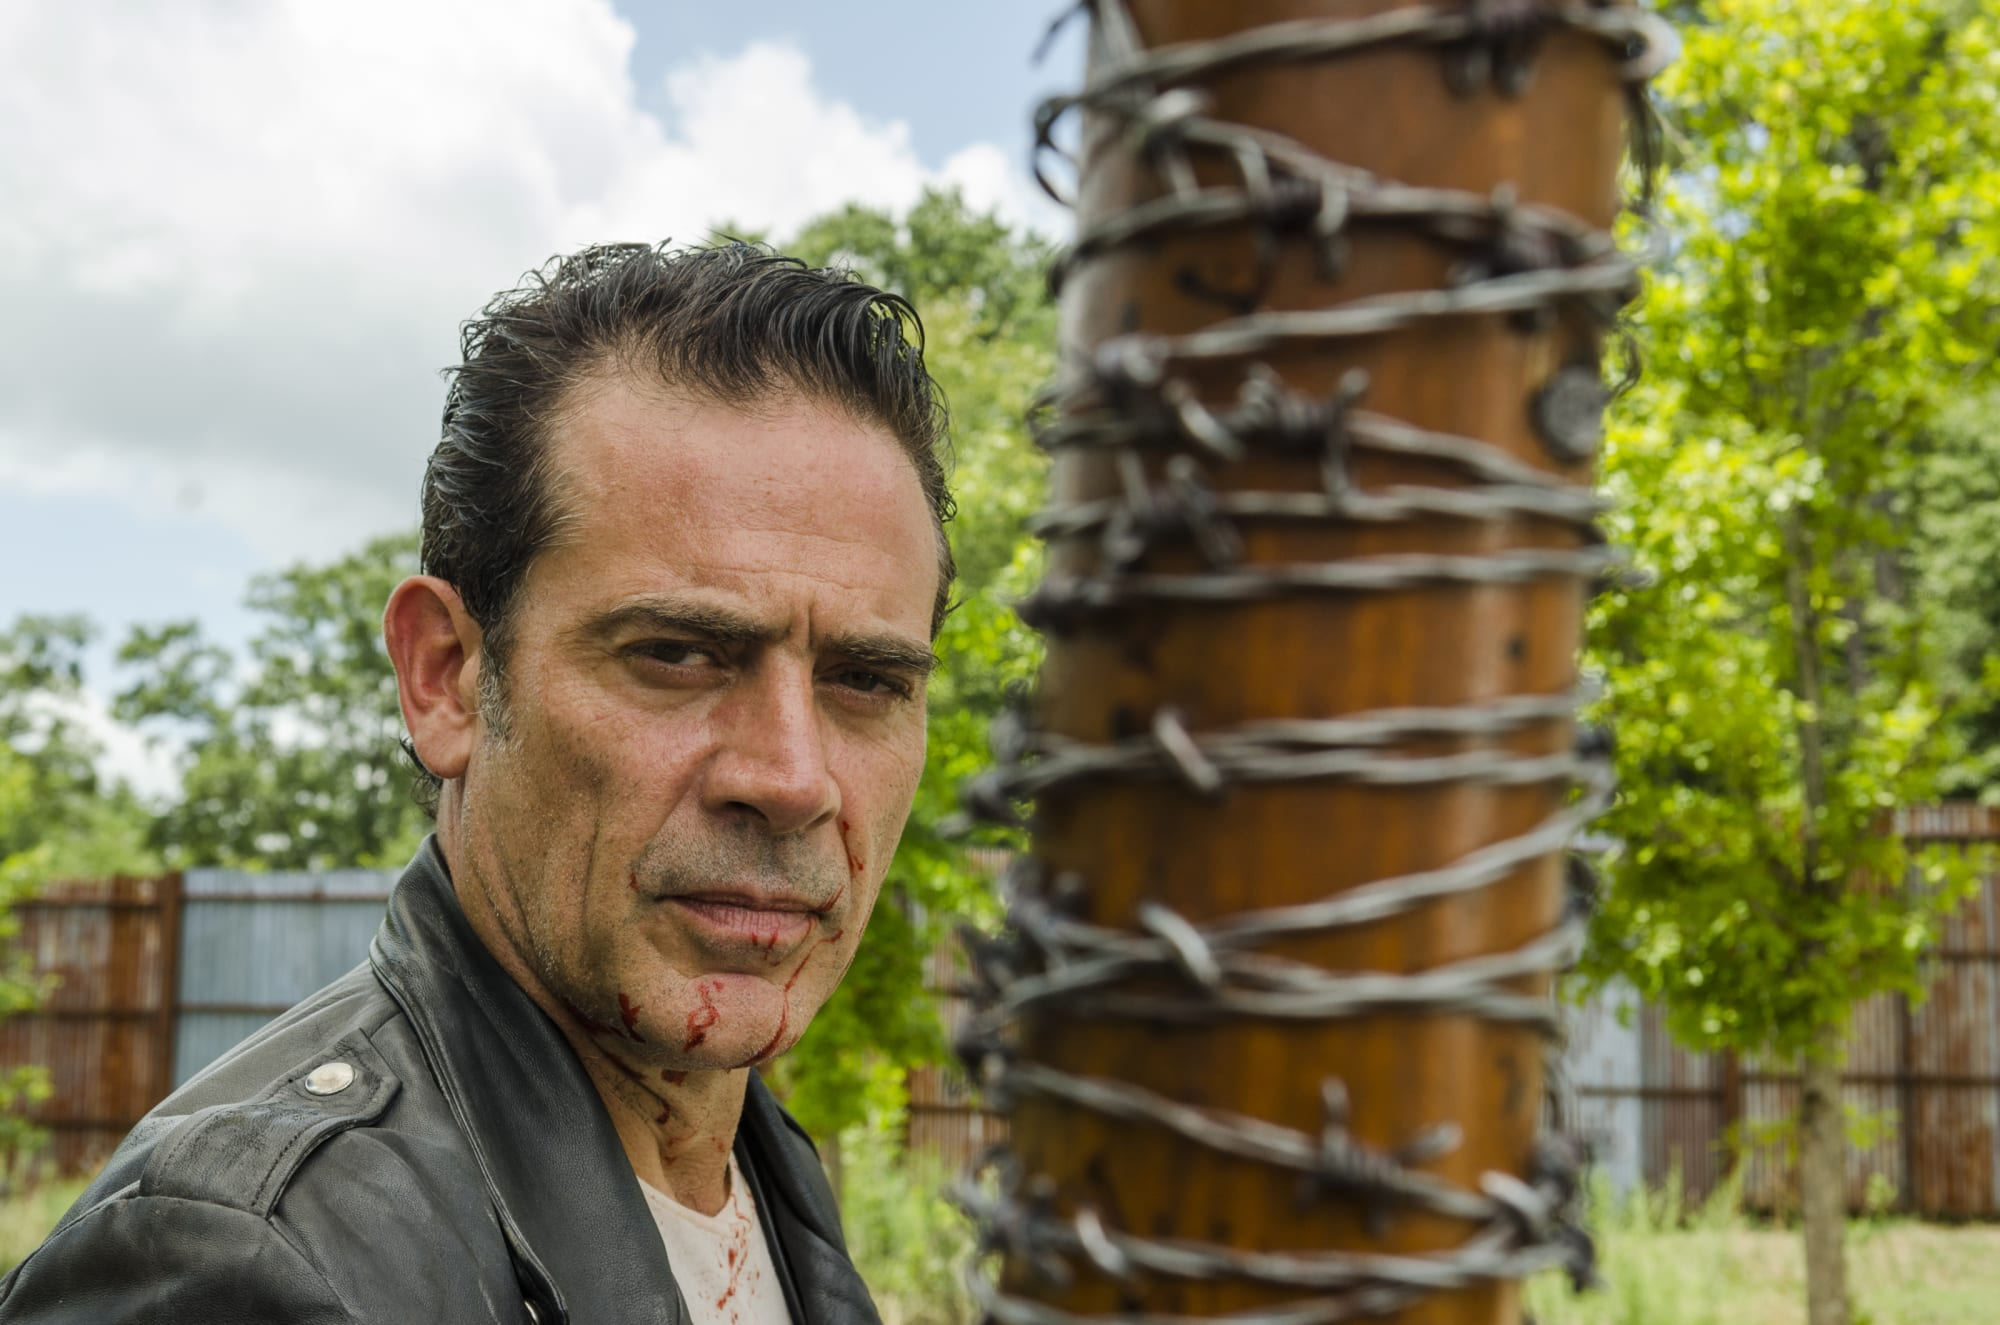 The Walking Dead releases new image of Negan and his wife Lucille